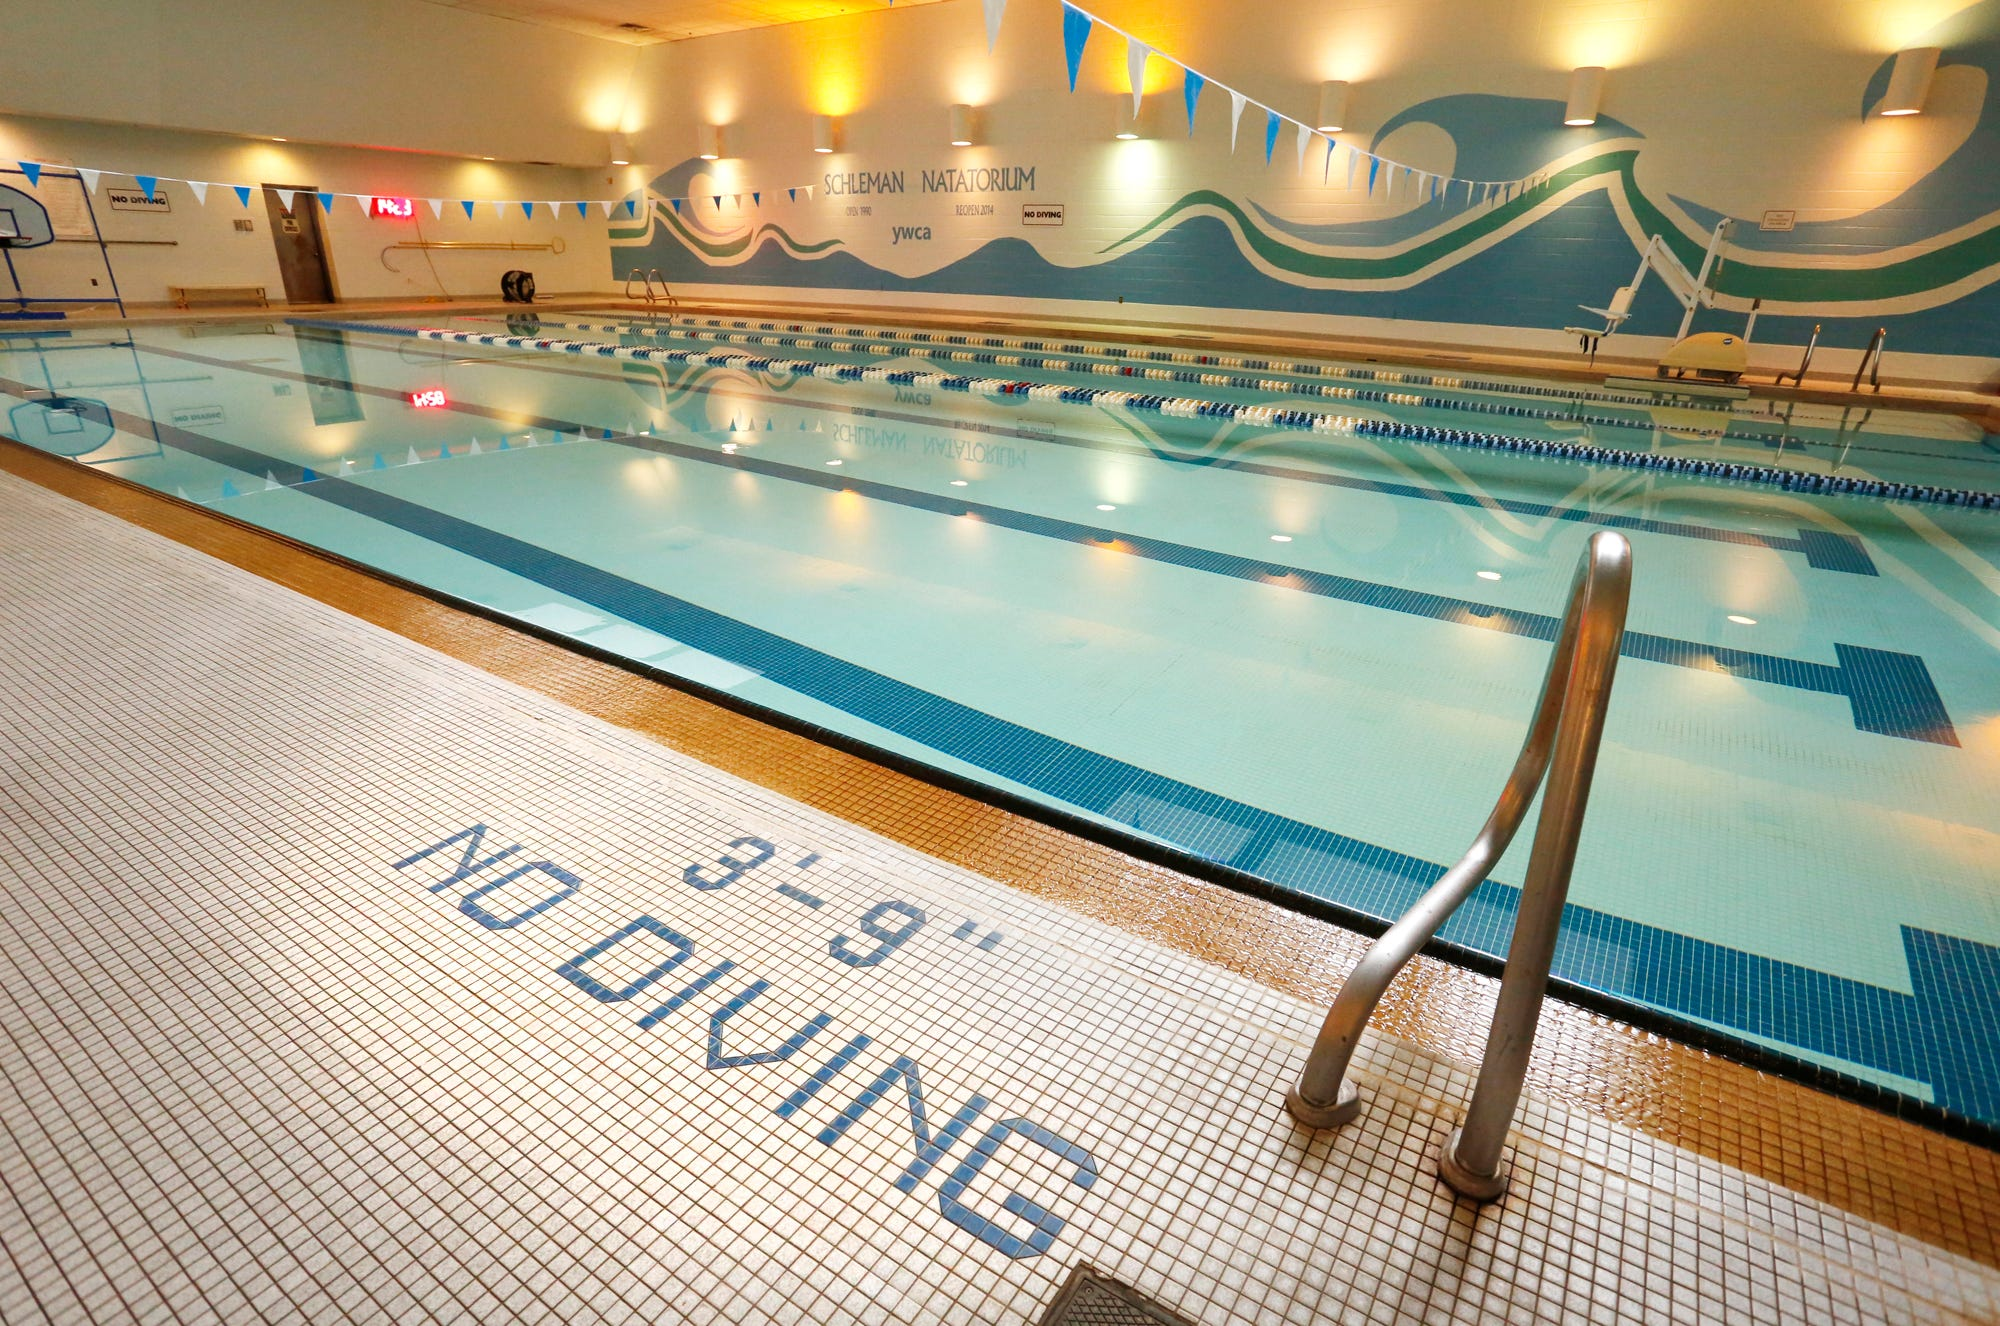 "Schleman Natatorium inside the YWCA Friday, August 24, 2018, 605 N. Sixth Street in Lafayettte. The YWCA is closing the pool September 30. The cost of maintaining the pool versus how much the pool is actually used forced the decision, YWCA executive director Allison Beggs said. ""This is not something we want to do, it's something we have to do,"" she said."